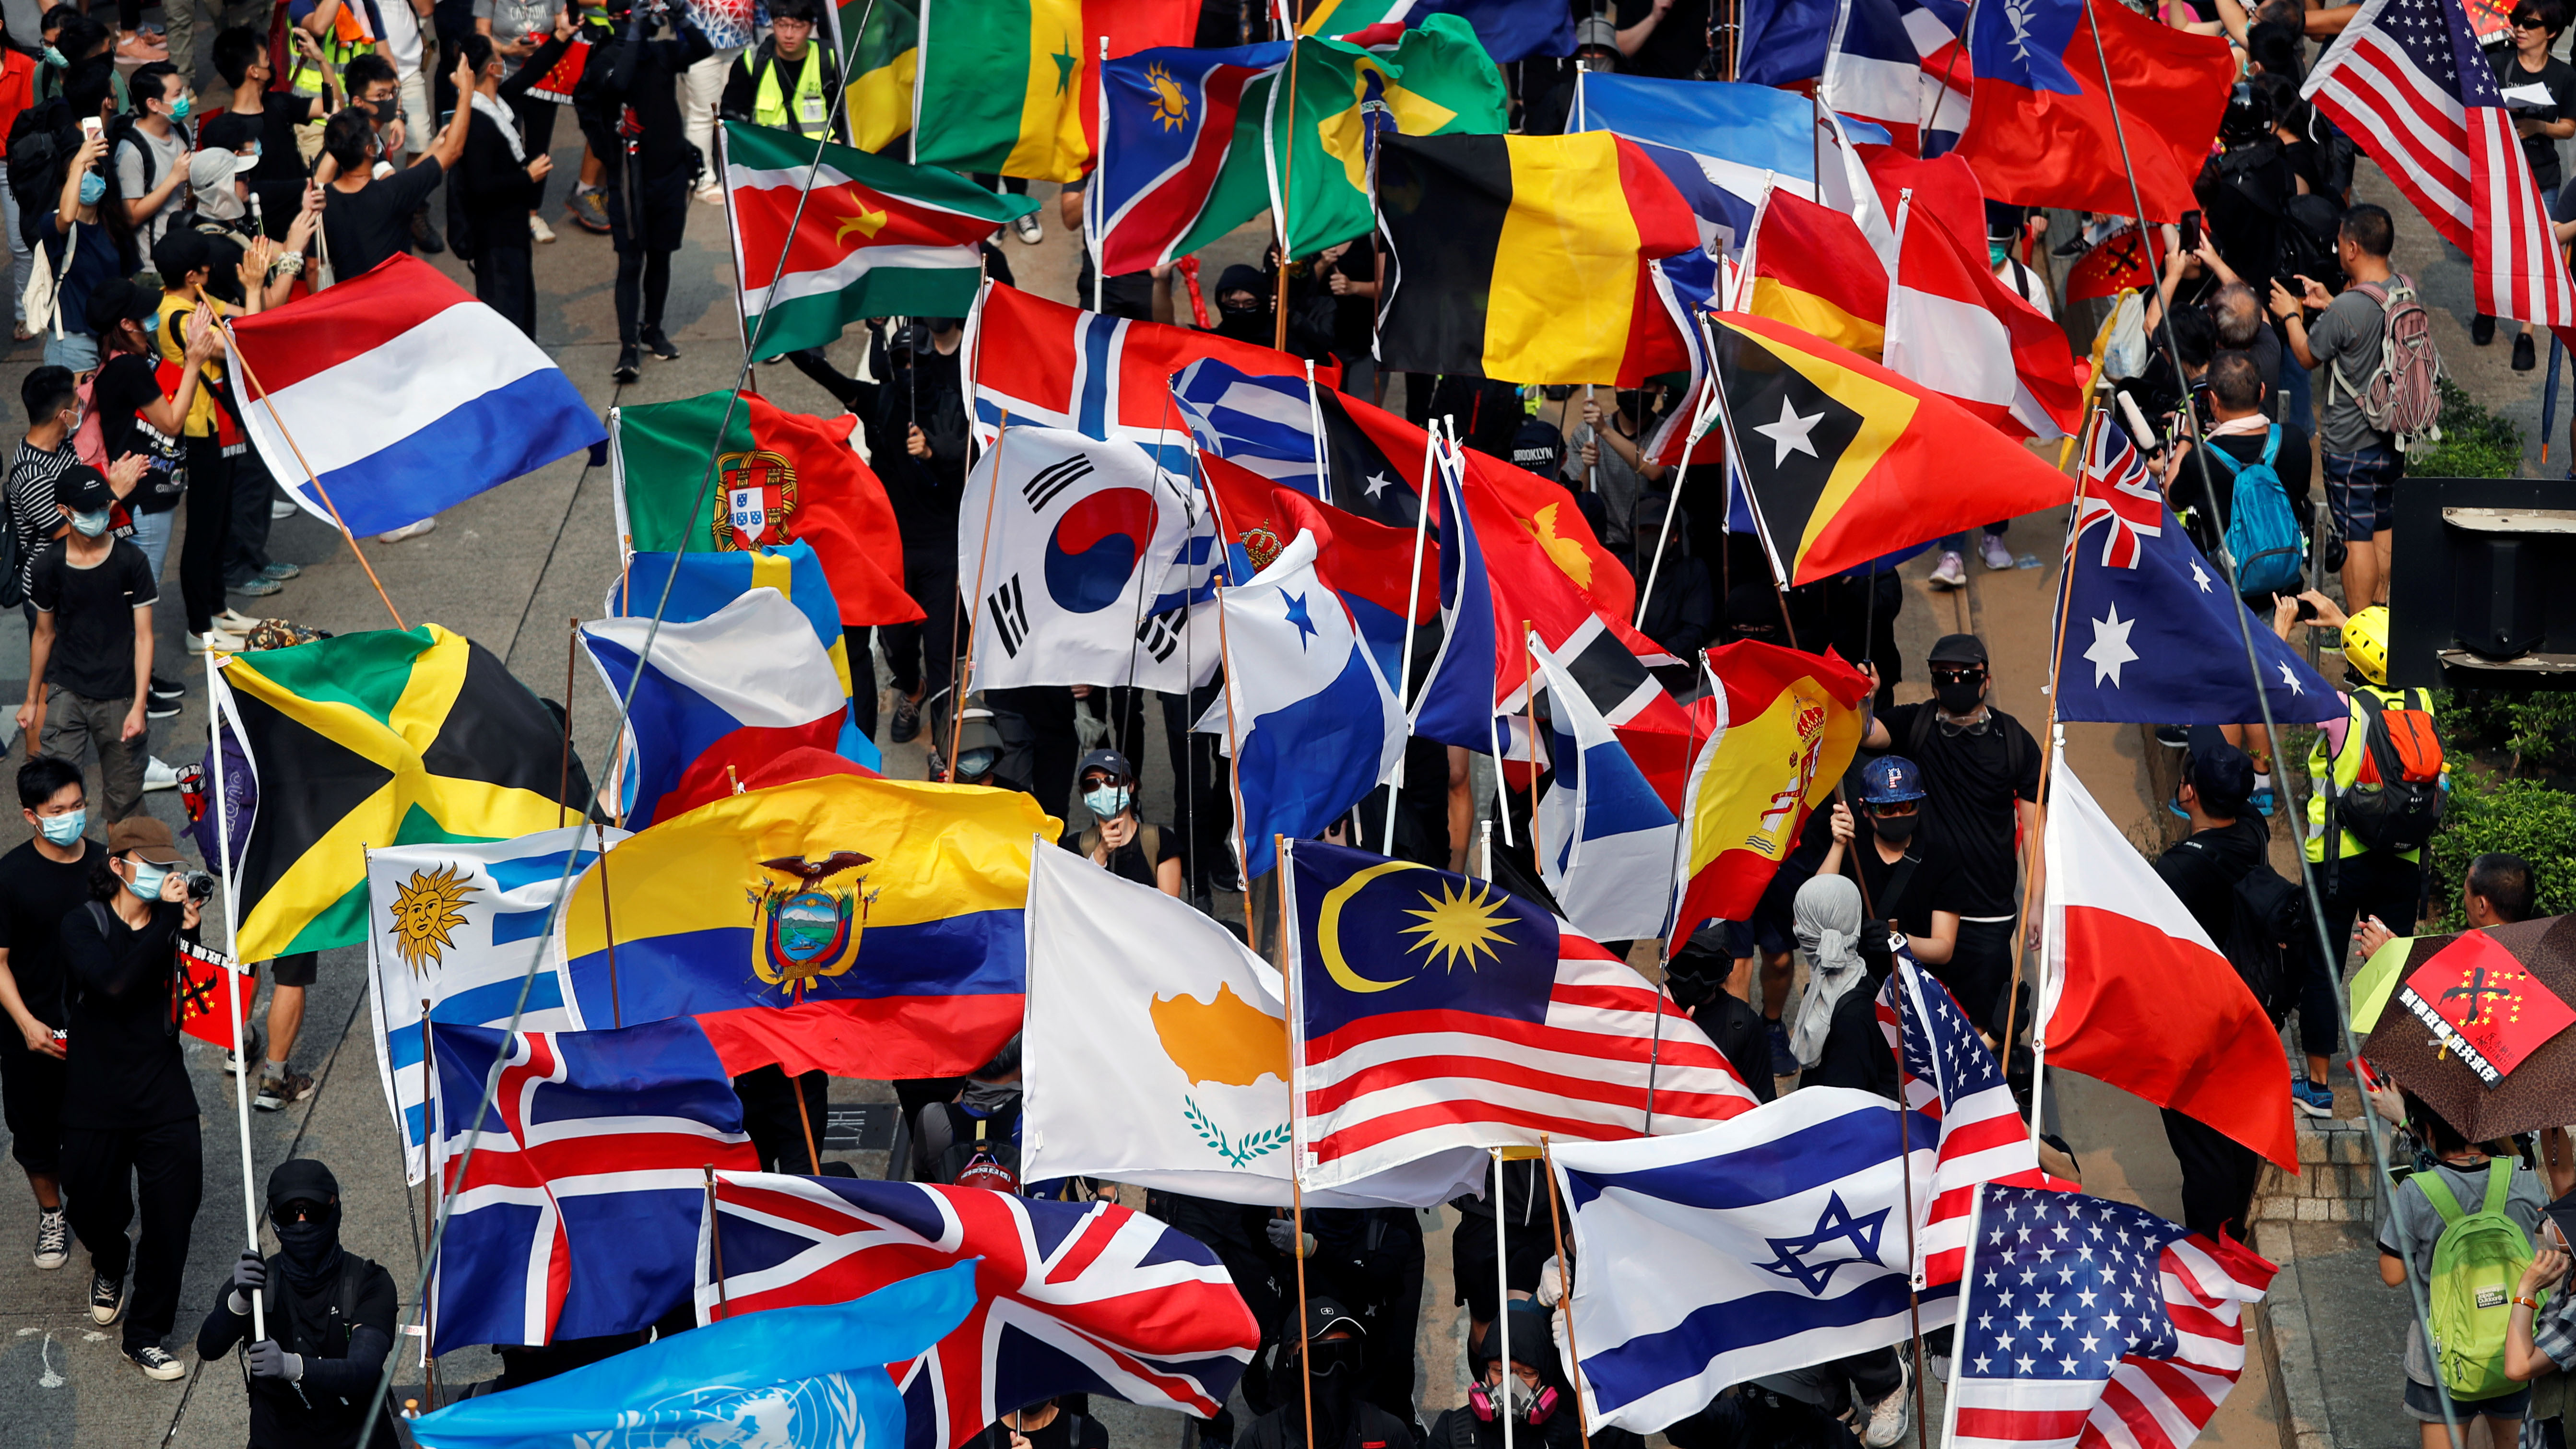 Flags of many countries carried by protesters fill the frame.